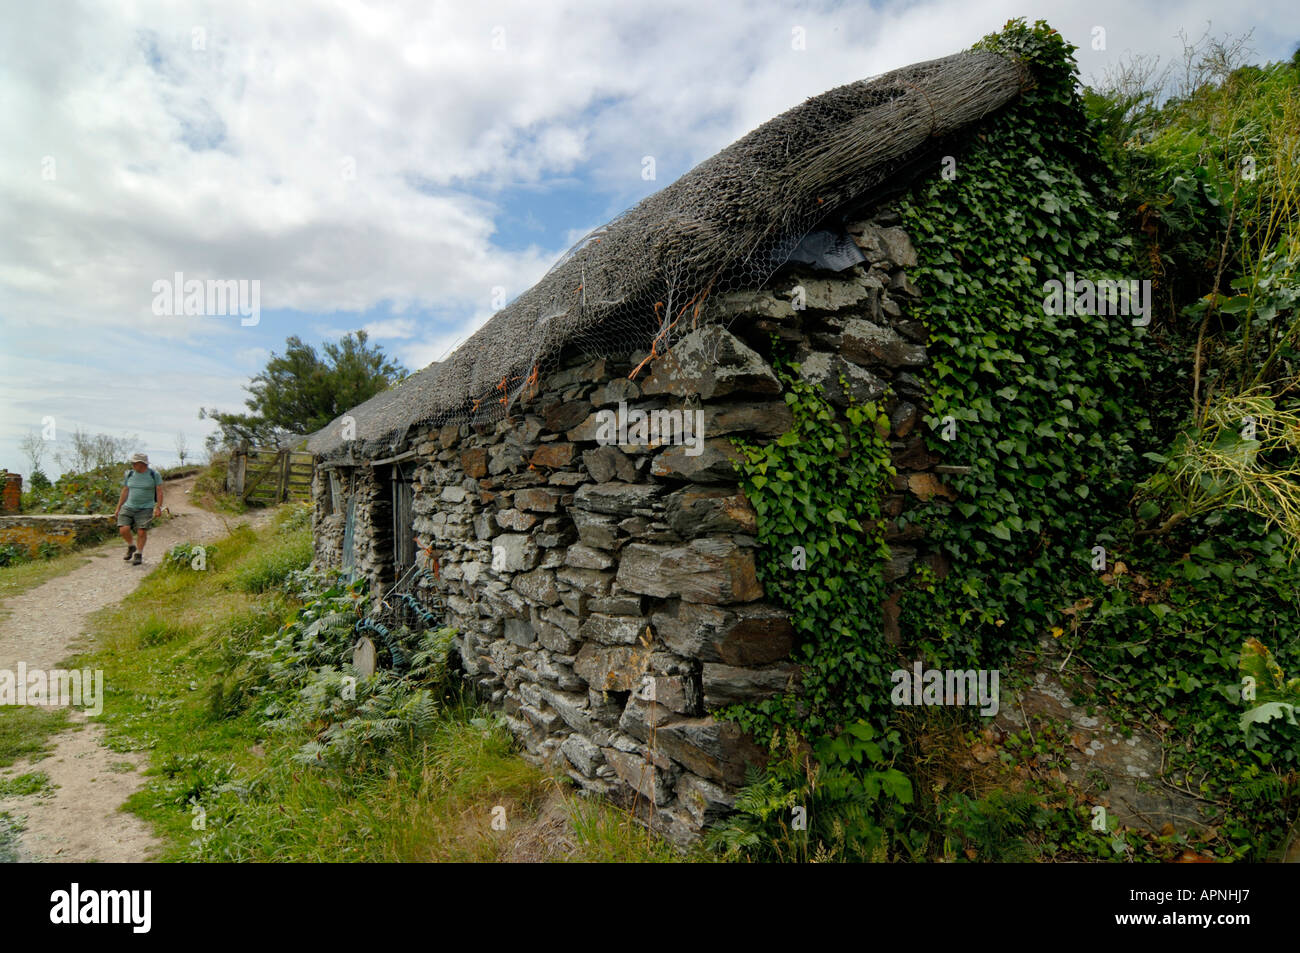 Fishermen's hut at Prusia Cove Prussia Cove Cornwall England and a man walking the Coastal Path - Stock Image